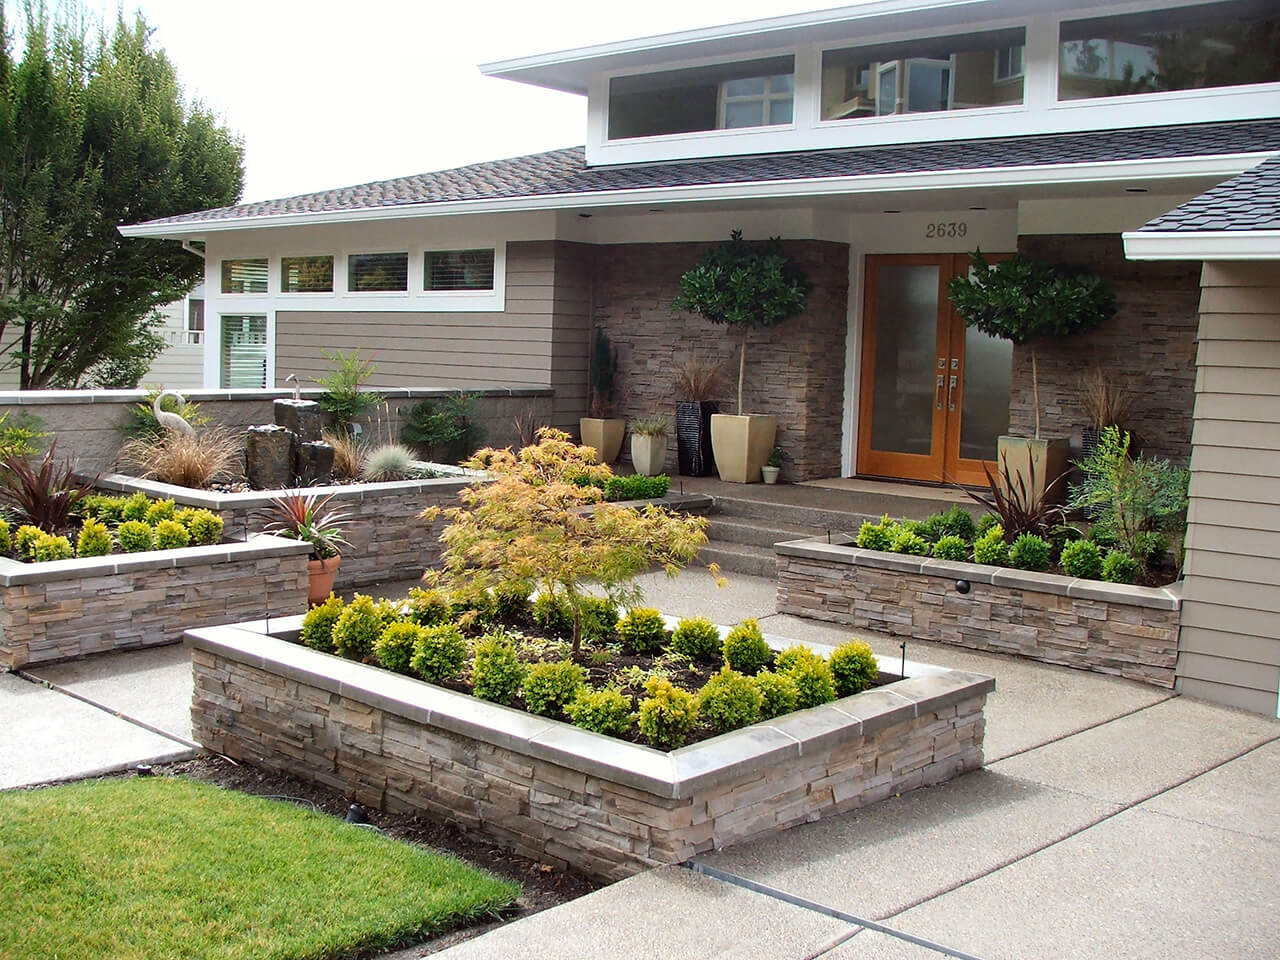 20 brilliant front garden landscaping ideas style motivation for Front yard garden design